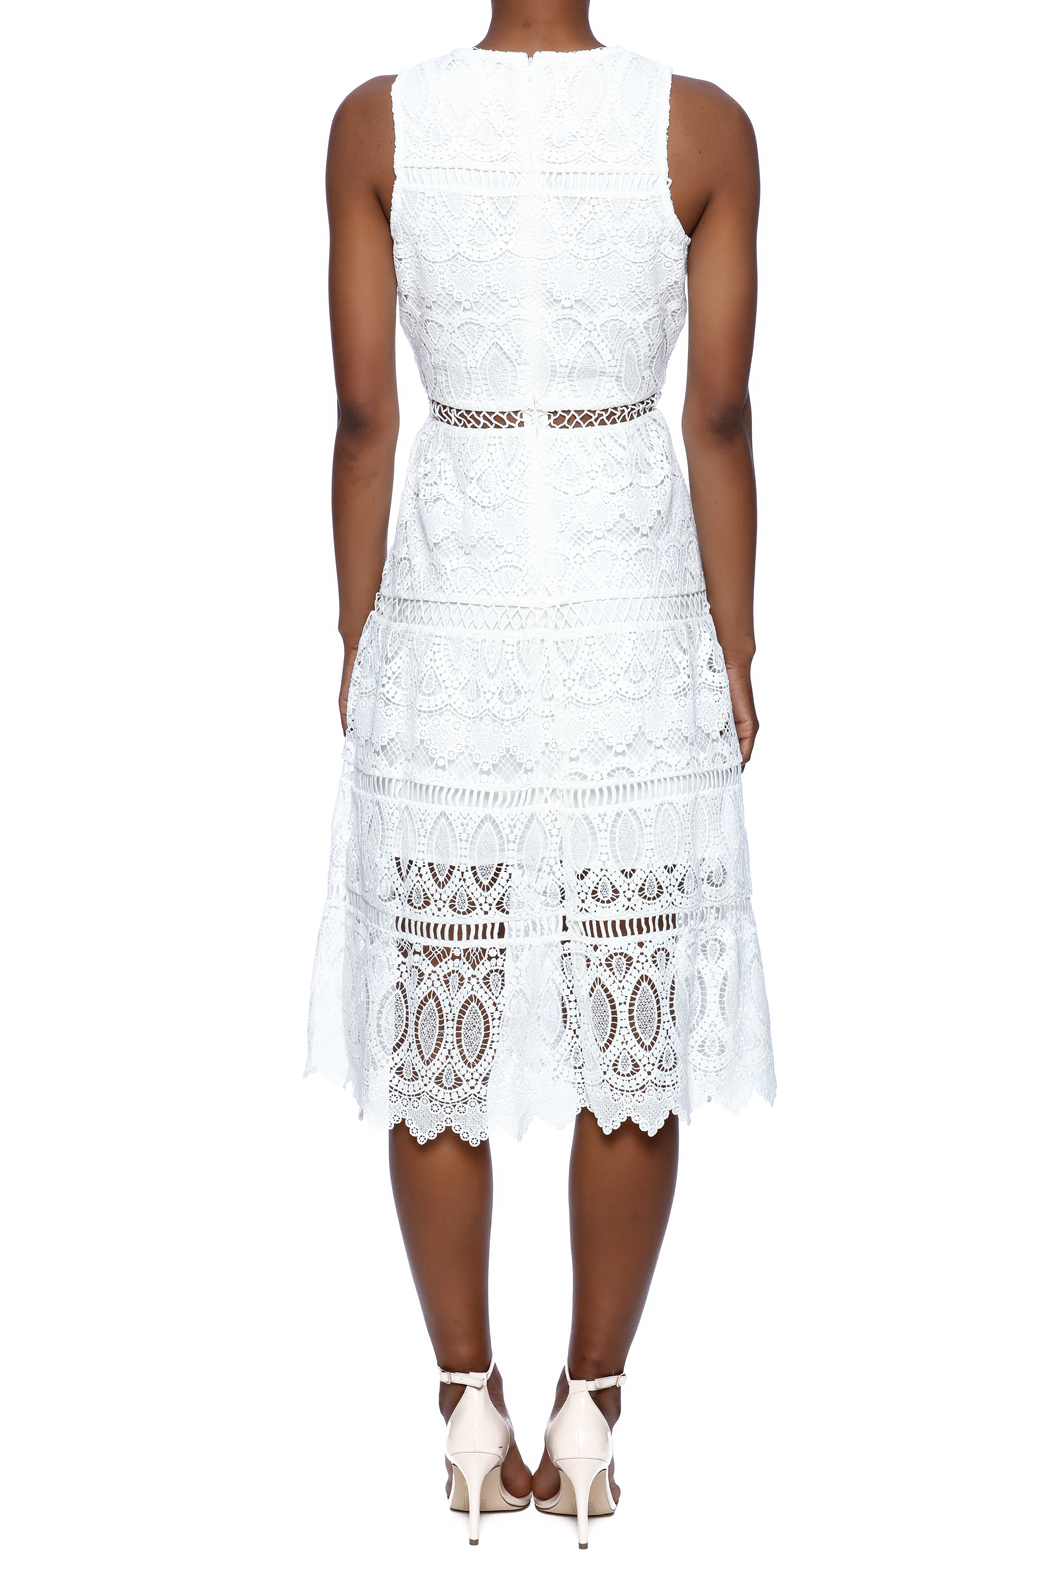 J.O.A. White Lace Dress - Back Cropped Image